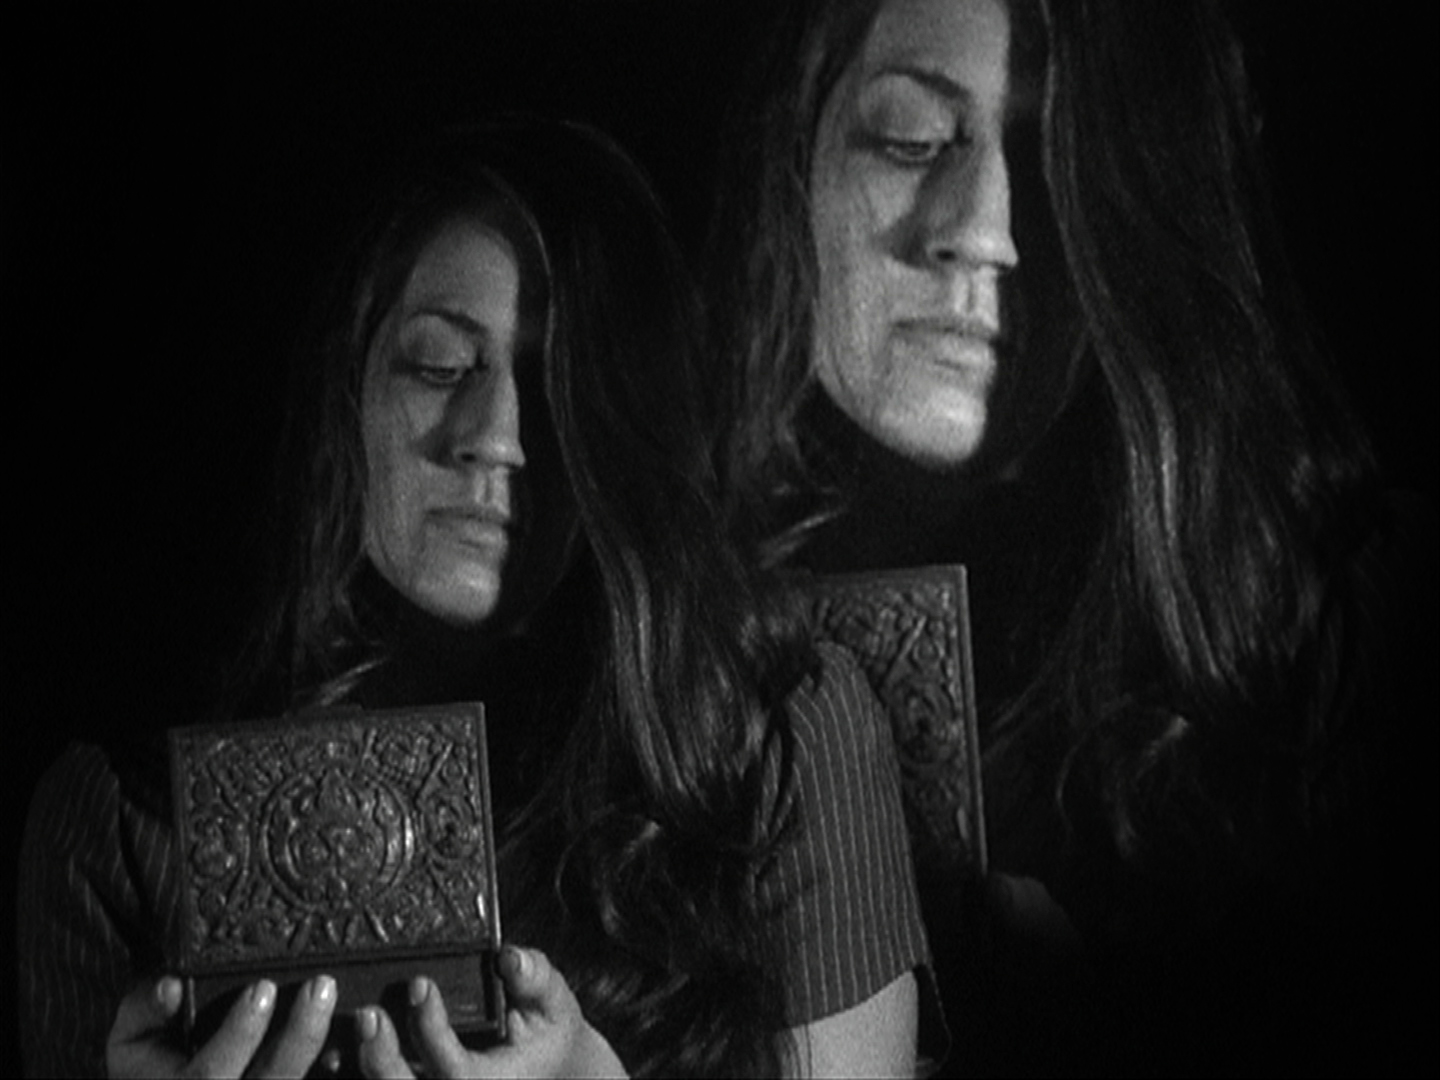 Synopsis - A girl is trapped in a box - or, is she? This 16mm/HD, surrealist short follows Luna as she listlessly travels through different environments,trying to find a way out of